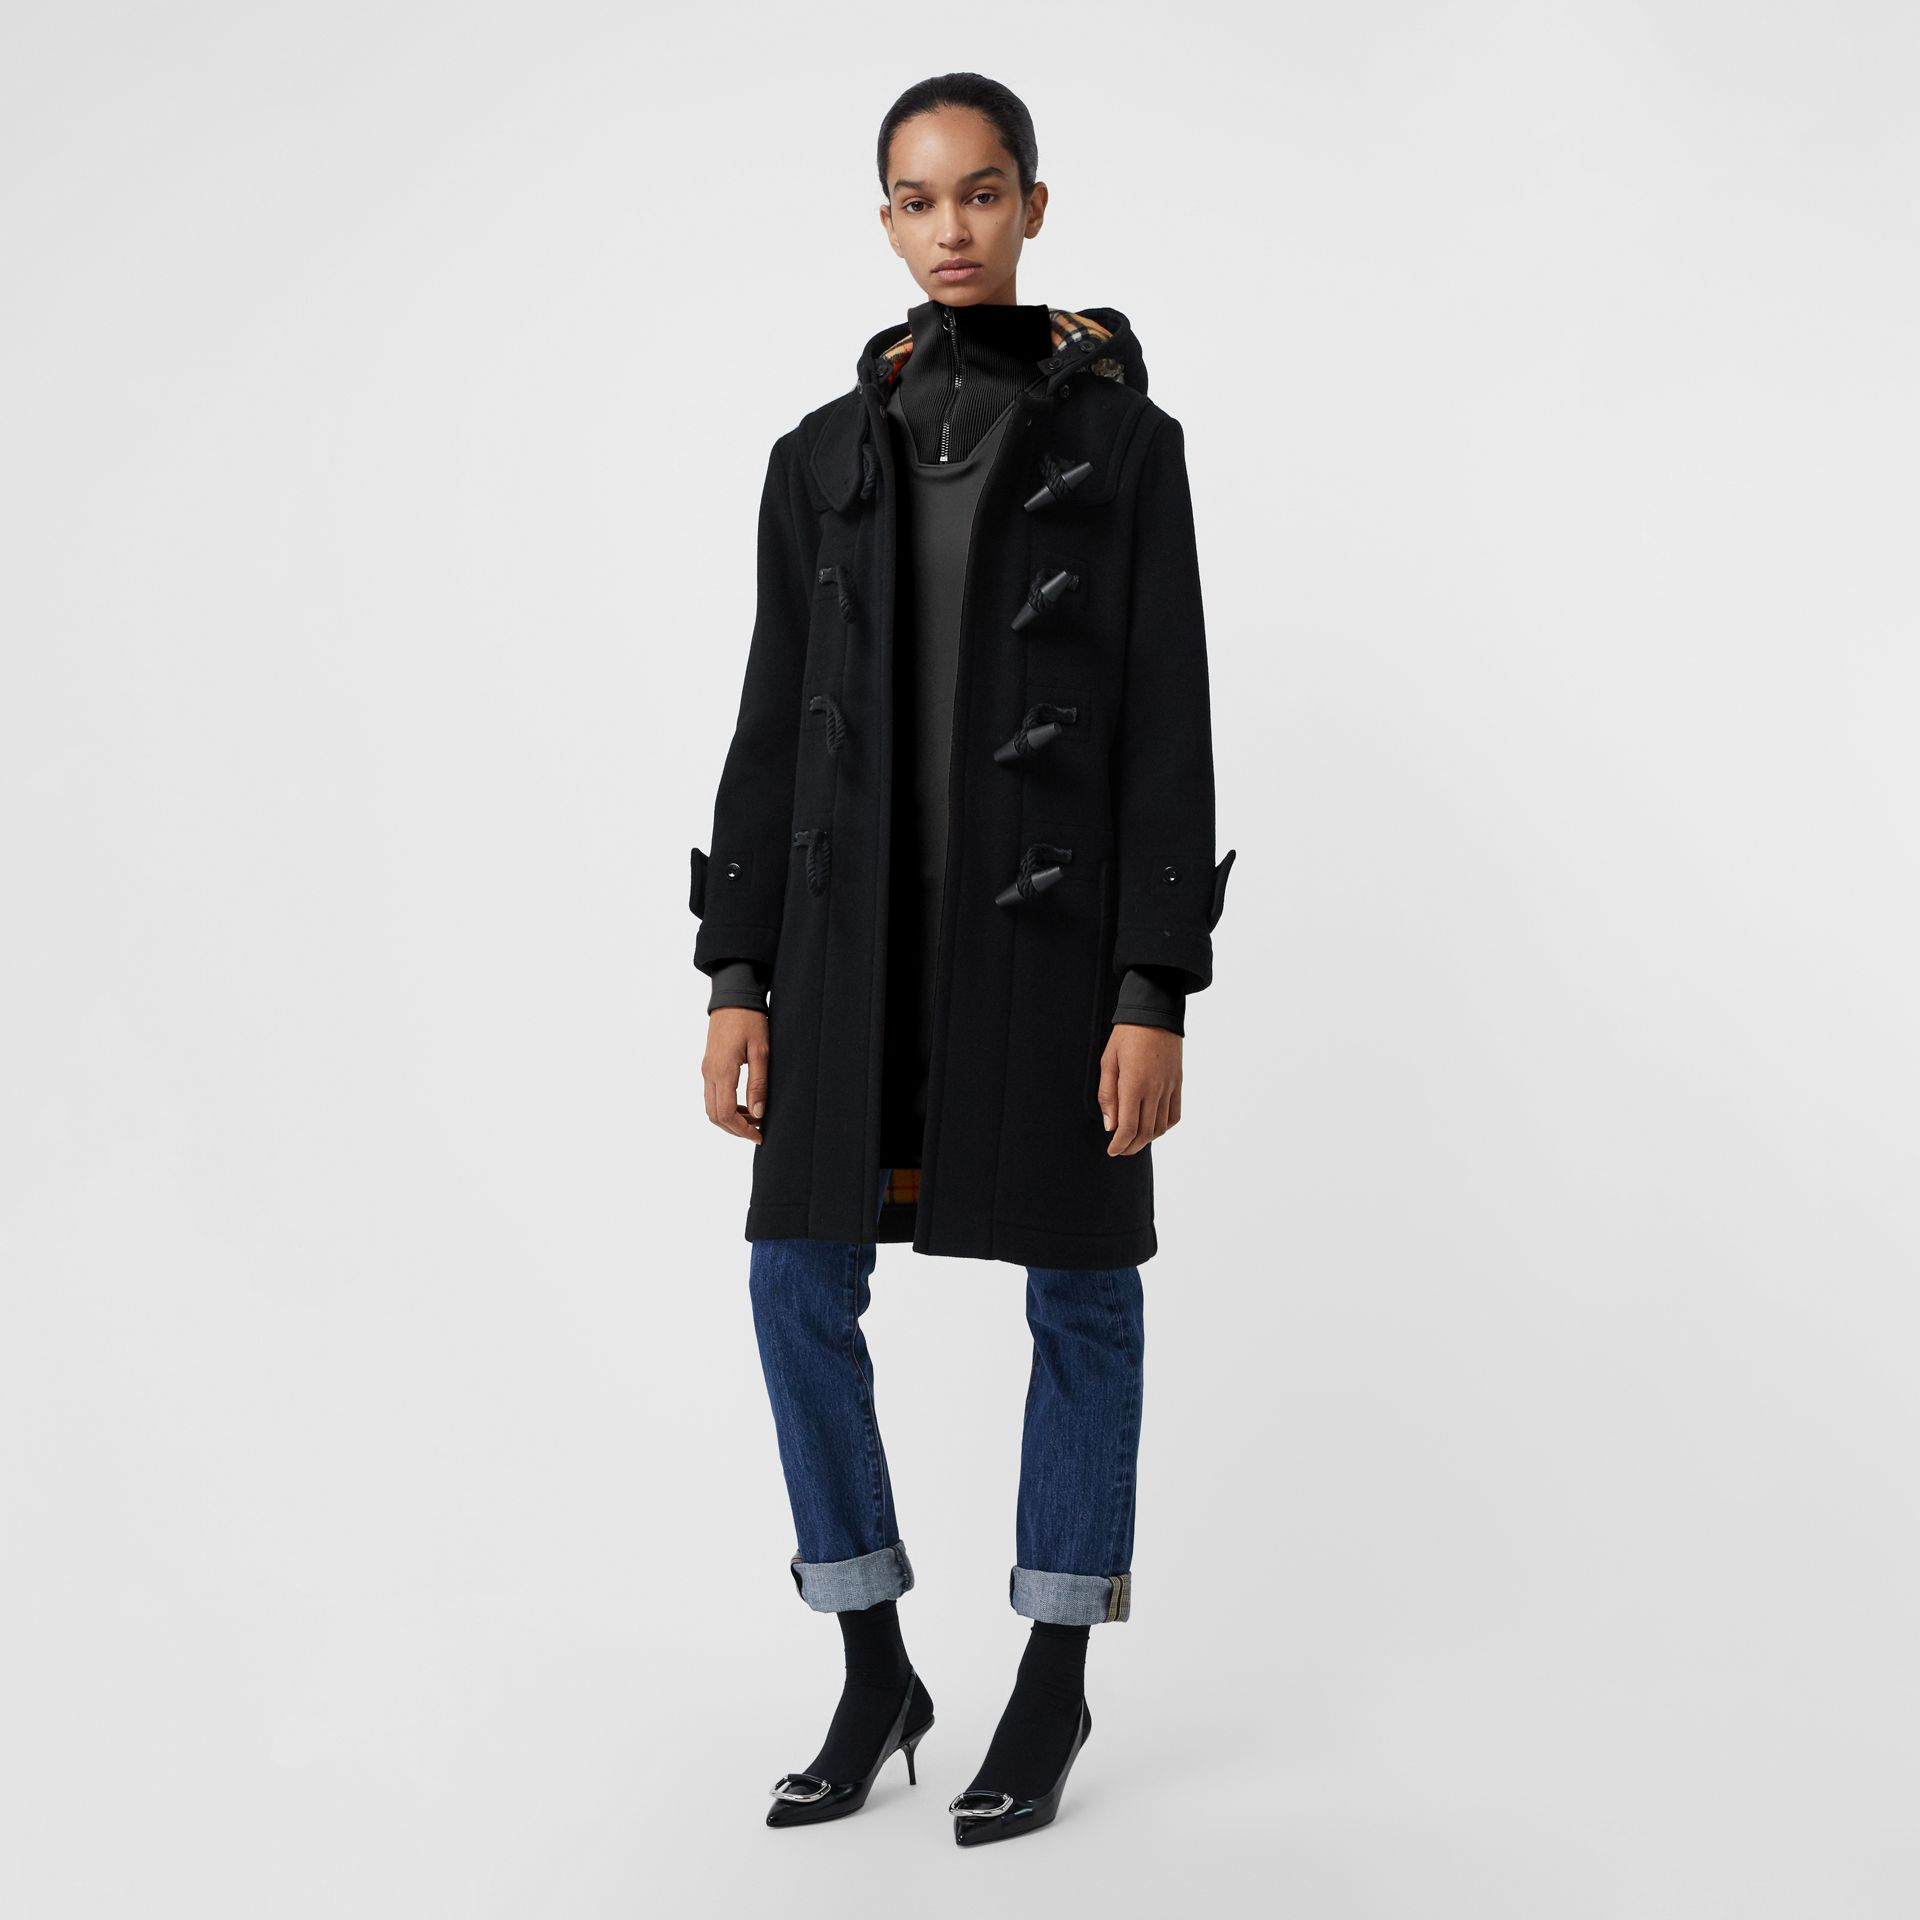 Wool Blend Duffle Coat in Black - Women | Burberry Singapore - gallery image 5